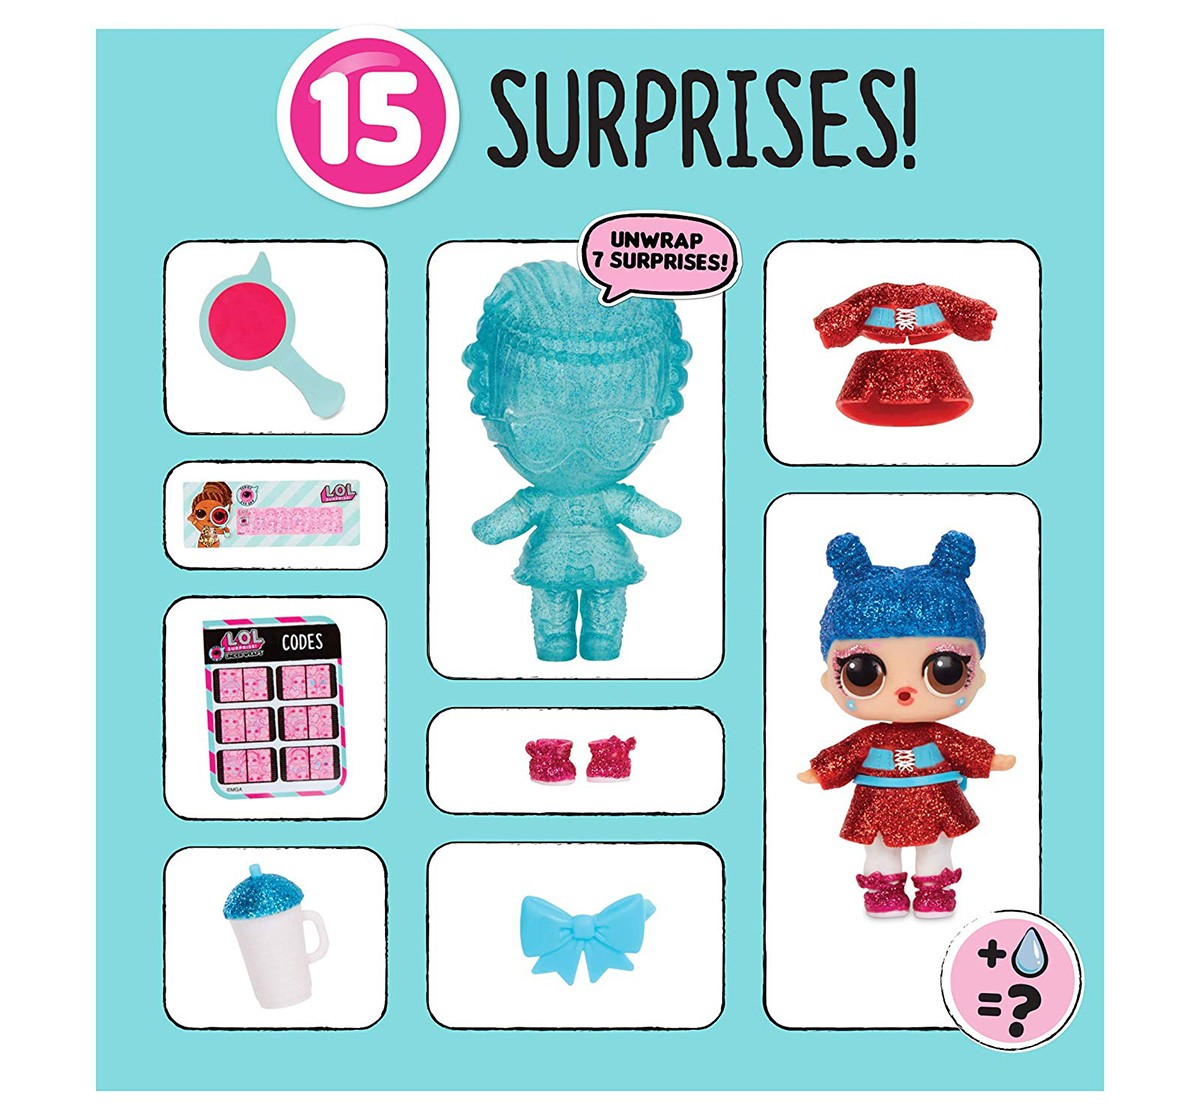 L.O.L. Surprise Under Wraps Doll Series Eye Spy 1A Collectible Dolls for Girls age 5Y+